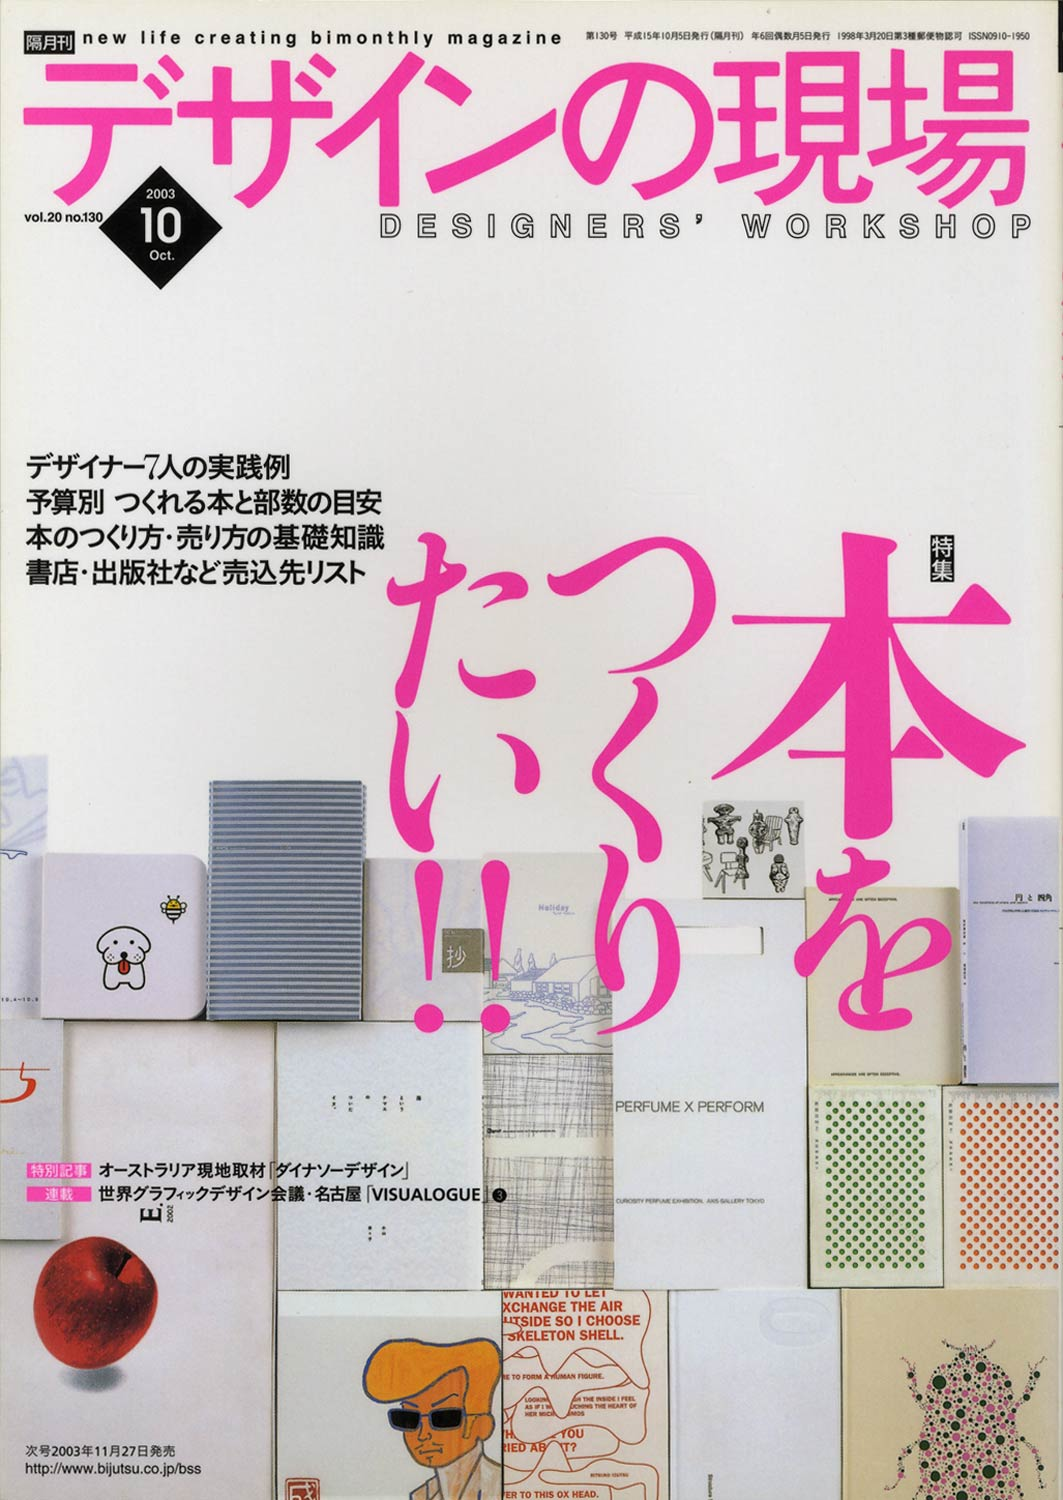 デザインの現場 DESIGNERS' WORKSHOP VOL.20 NO.130